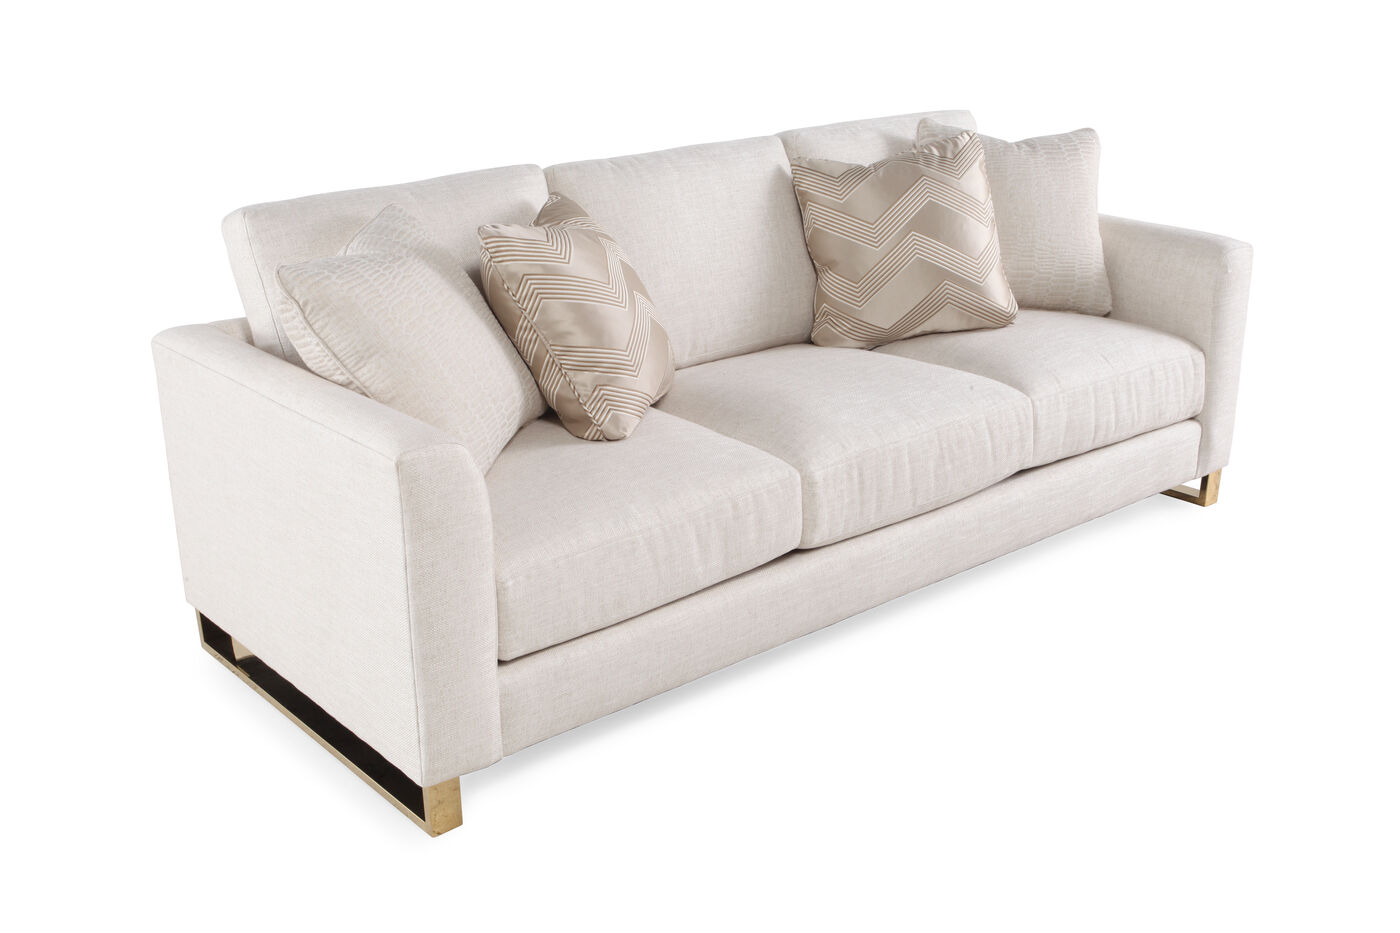 Bernhardt interiors perkins sofa mathis brothers furniture for Where to buy bernhardt furniture online